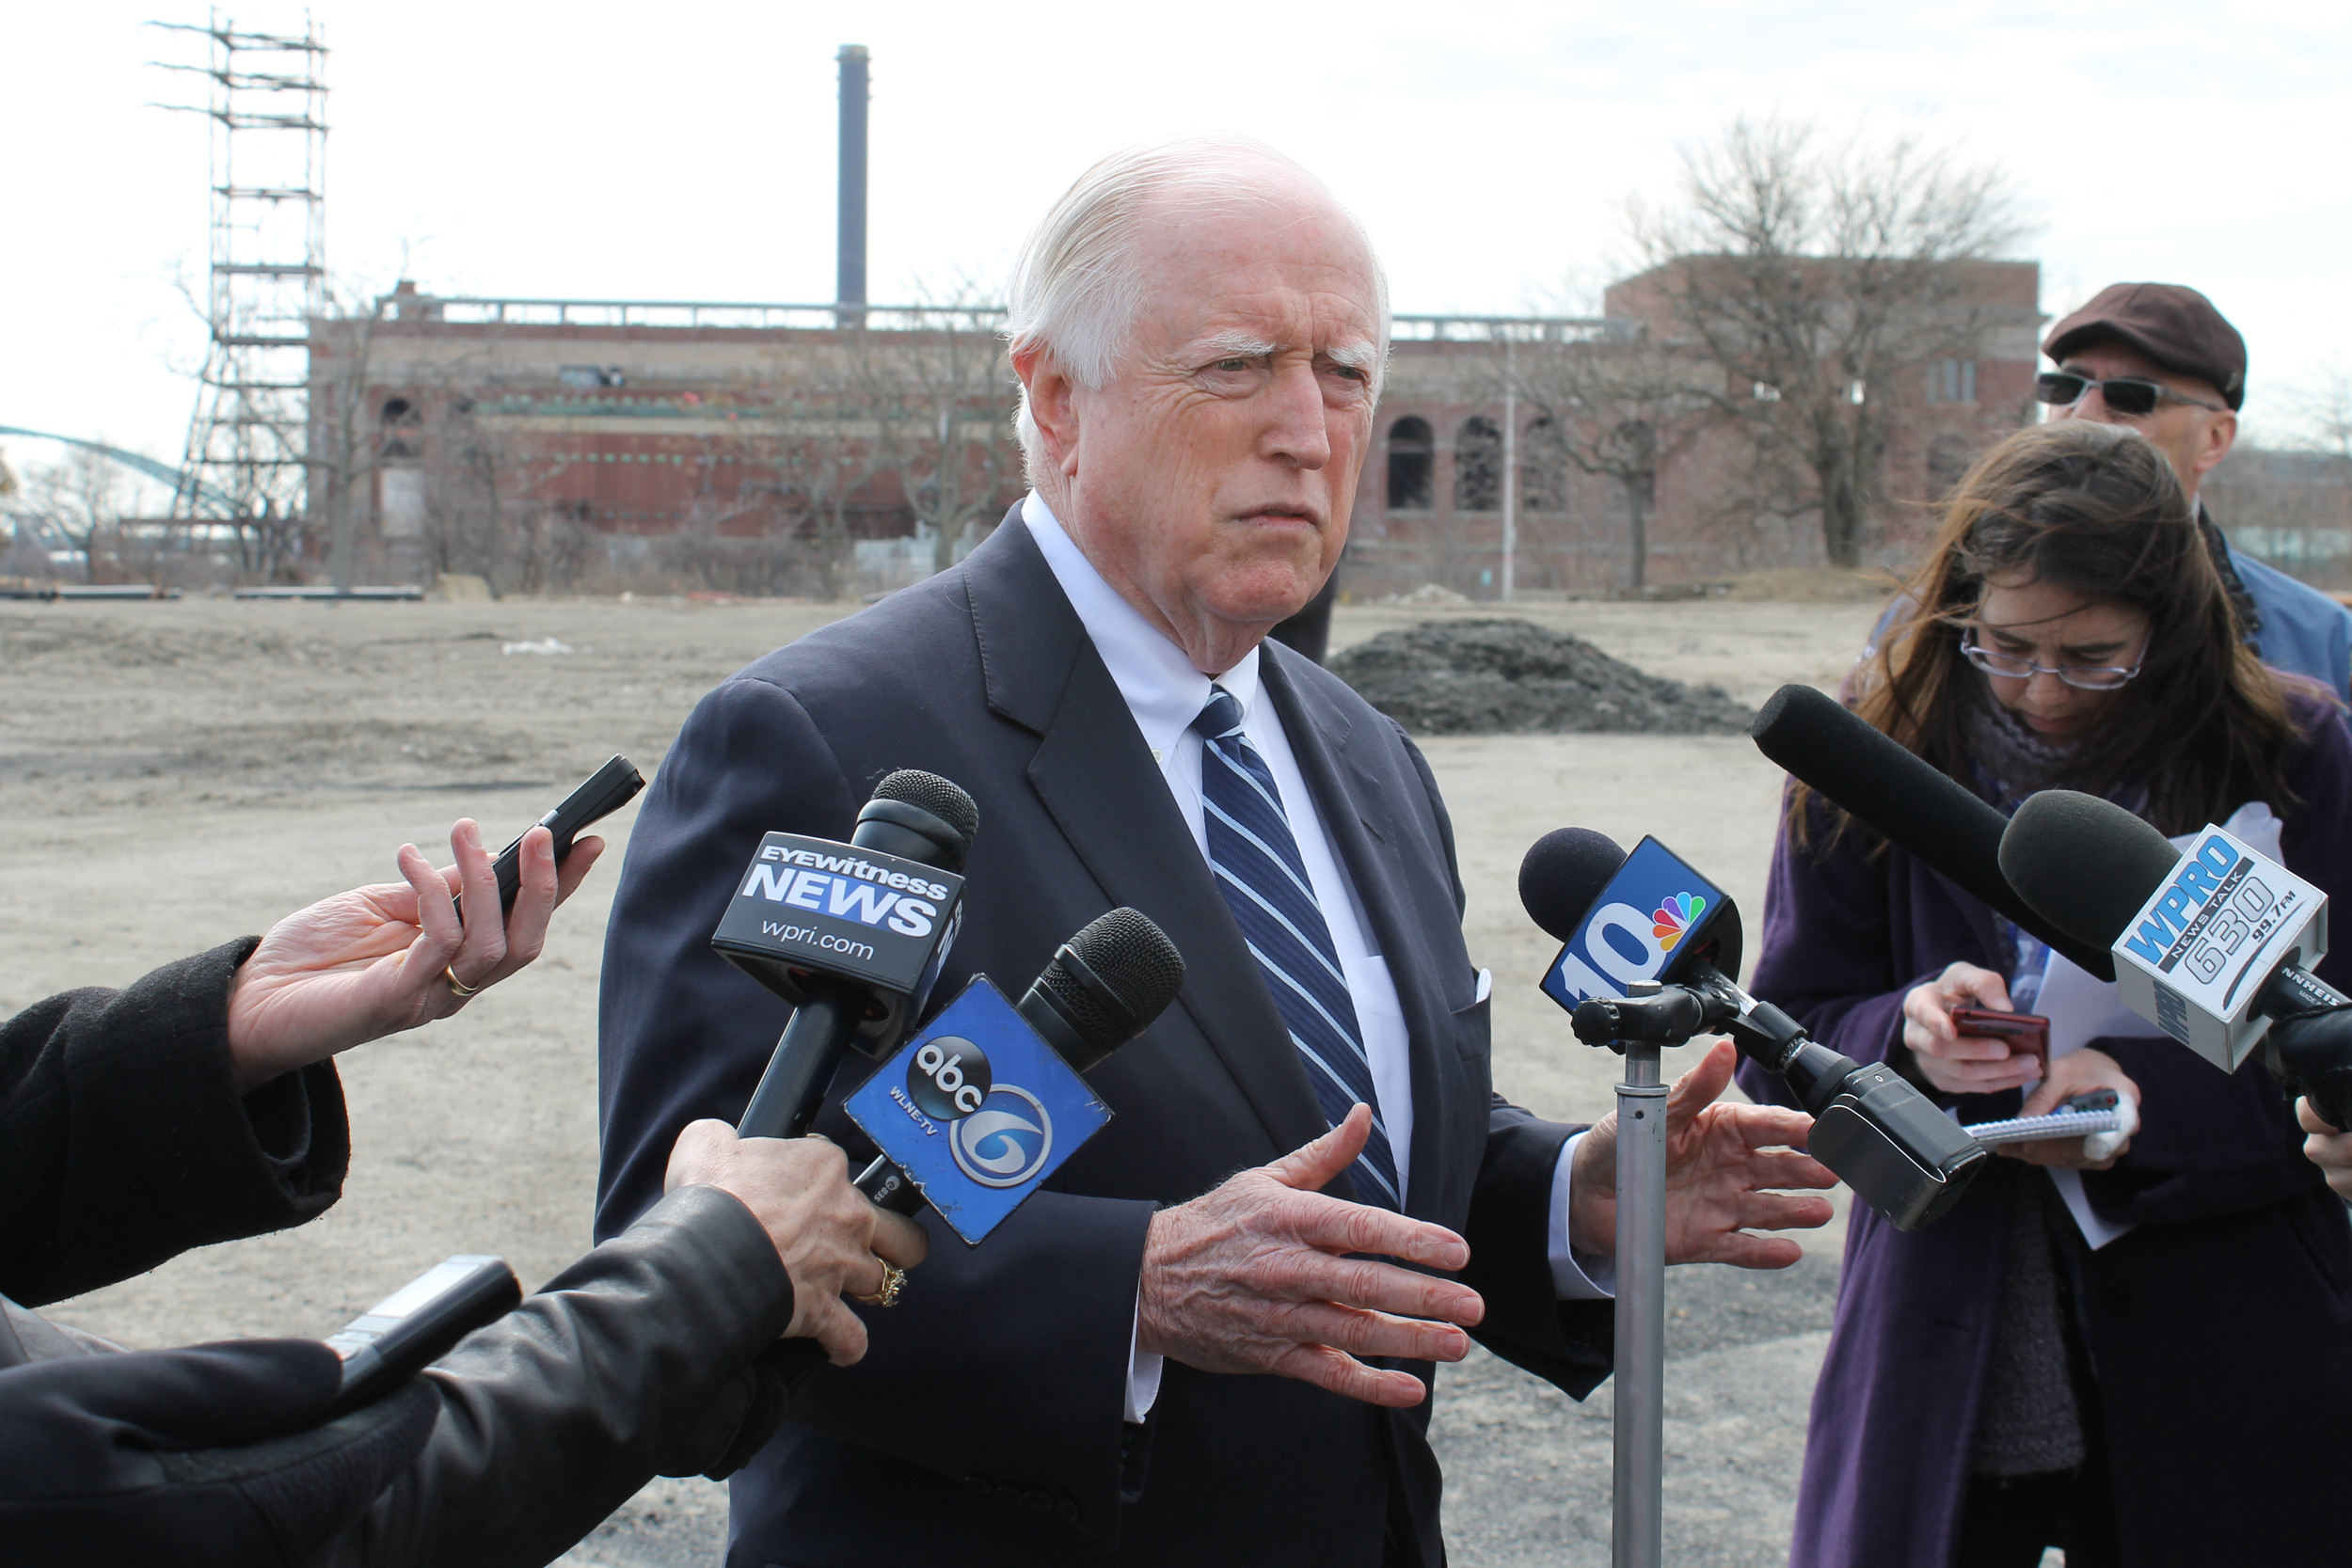 ATTORNEY JAMES J. Skeffington, the new team president of the Pawtucket Red Sox, describes the site plan for the proposed AAA ballpark in Providence. In the background is the former power plant that will be renovated as part of the South Street Landing project. / PBN PHOTO/MARY MACDONALD